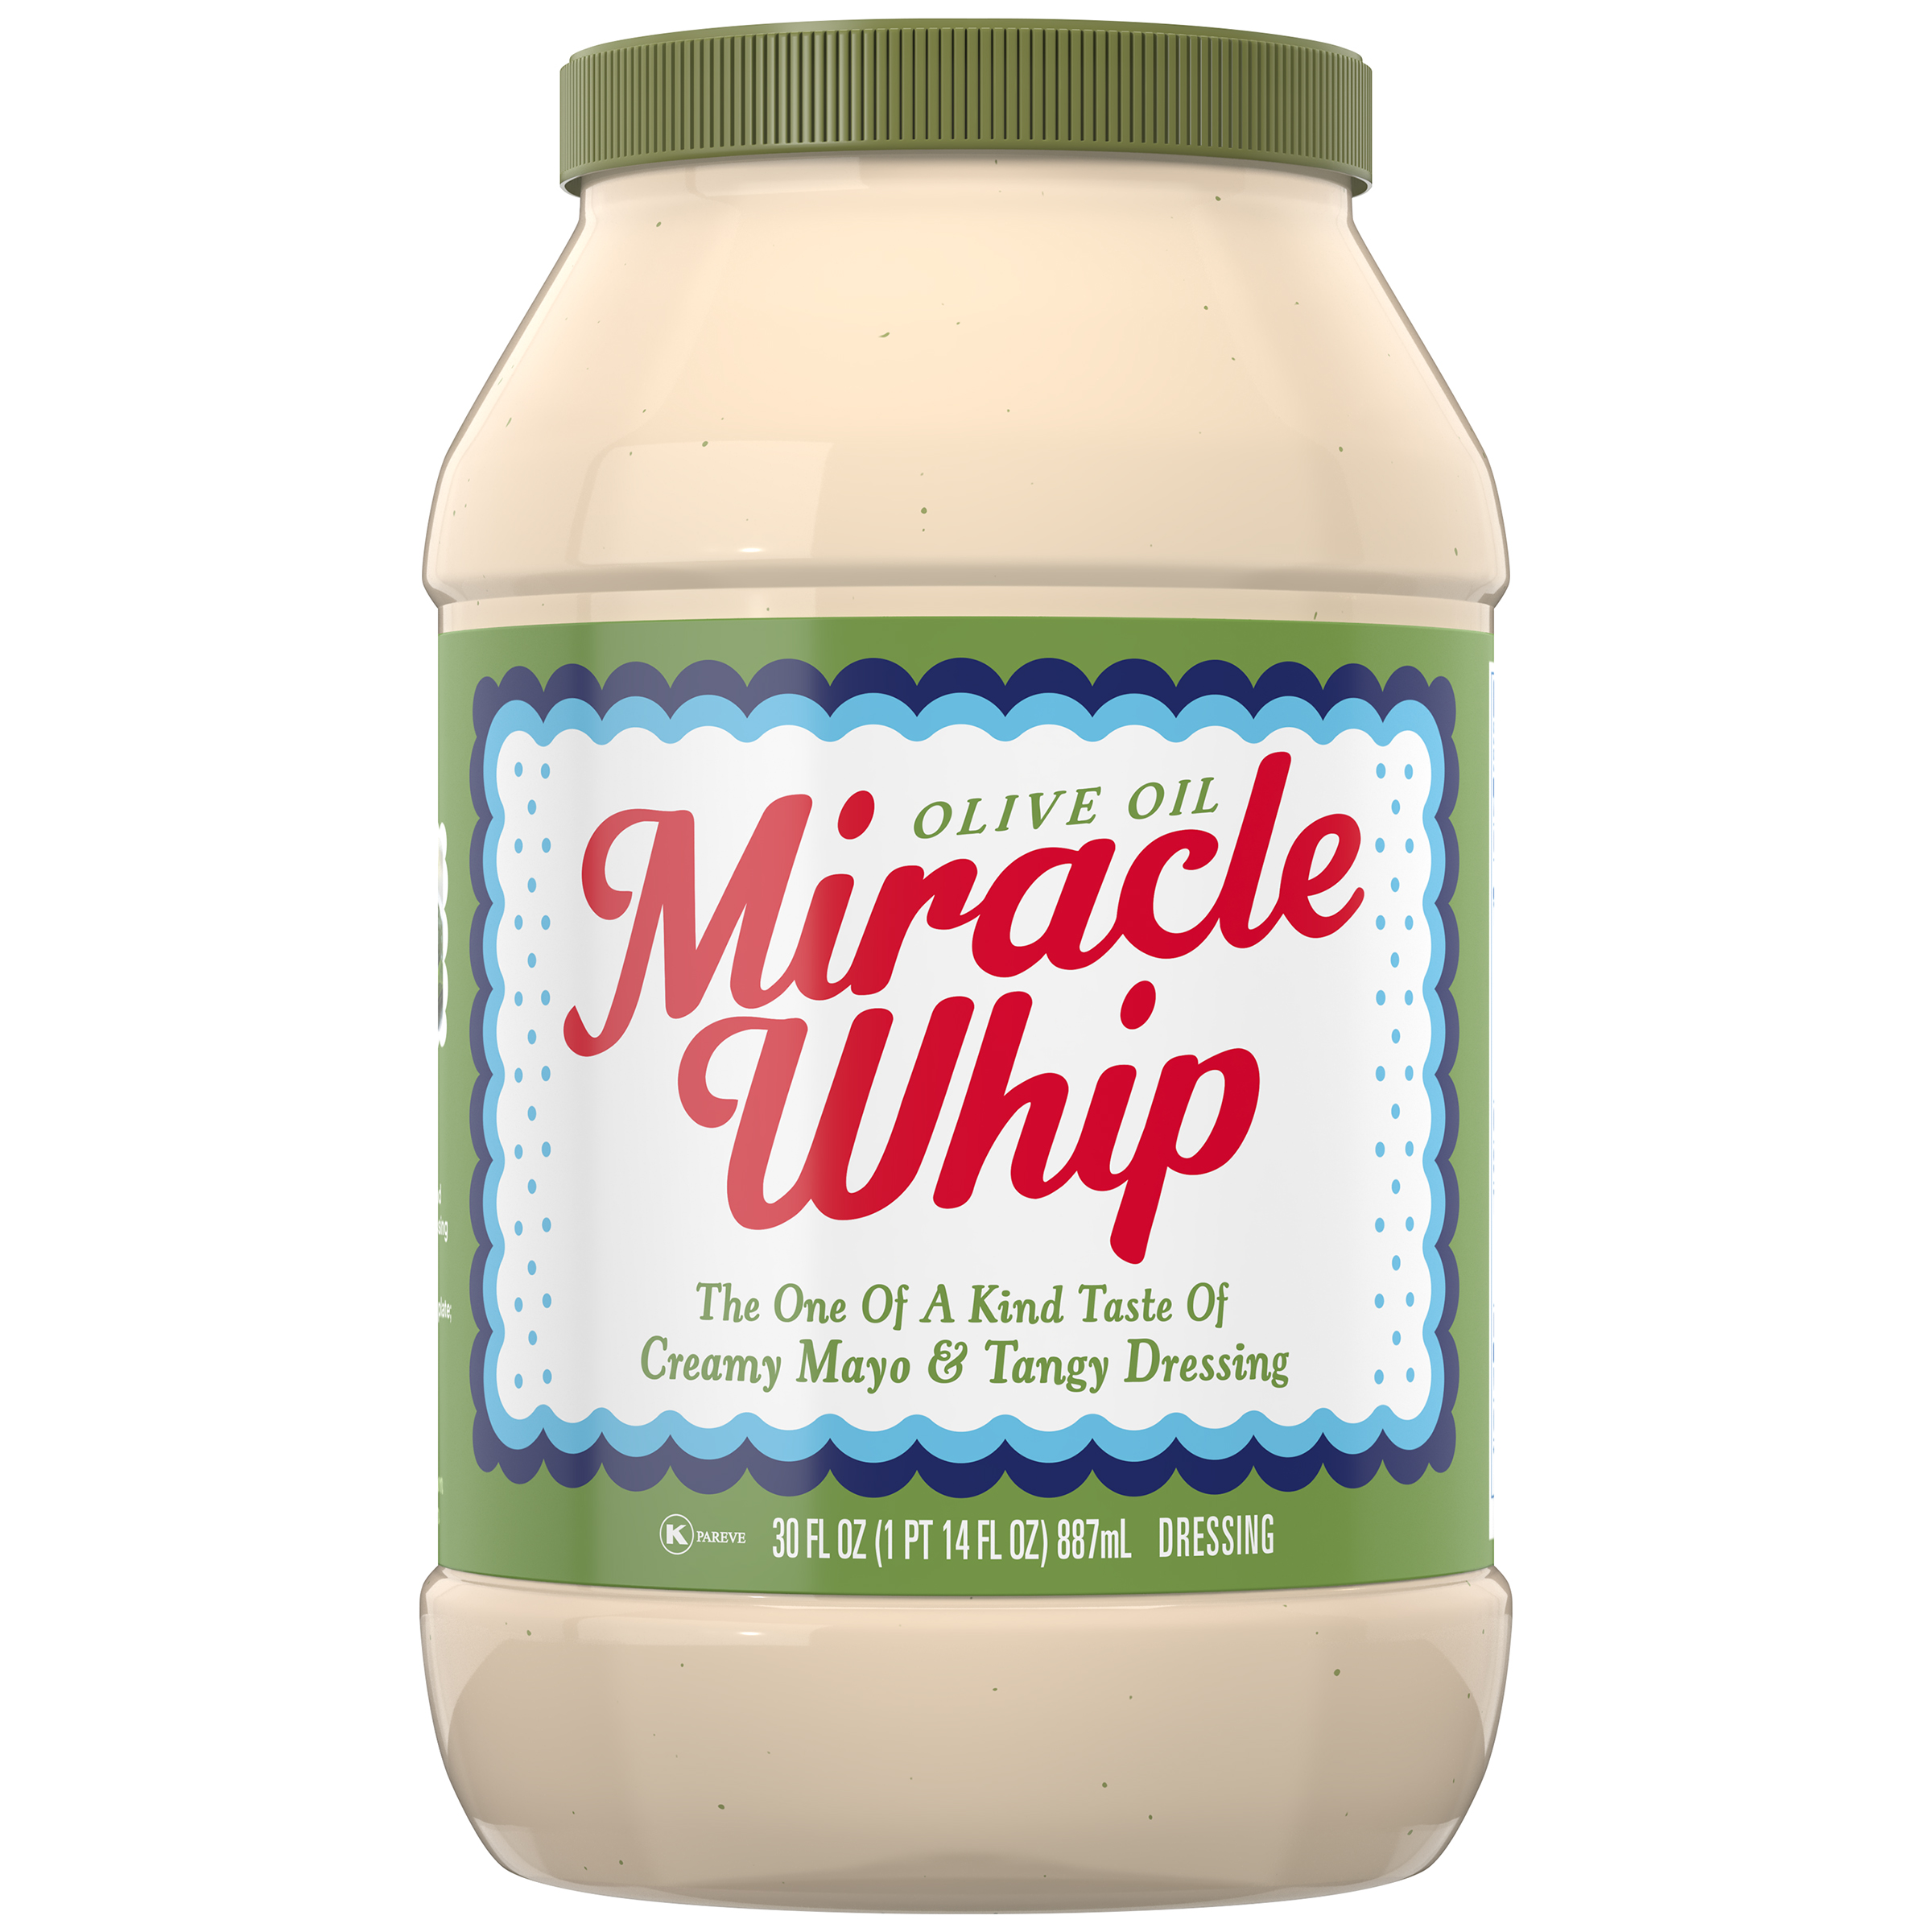 Kraft Miracle Whip Mayo Dressing Olive Oil Reduced Fat, 30 fl oz